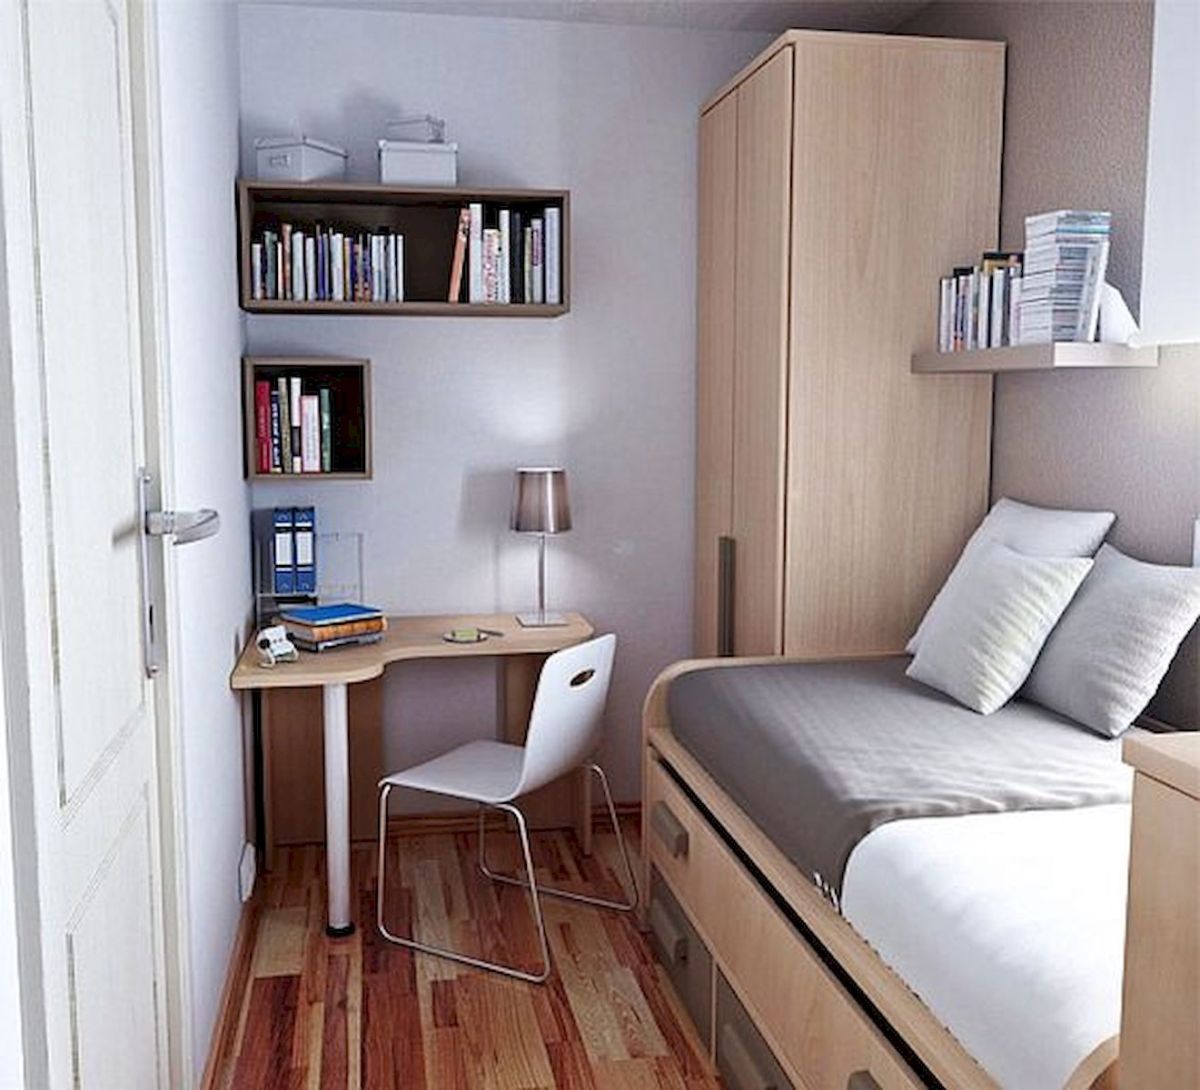 33 Ideas For Small Apartment Bedroom College (12)